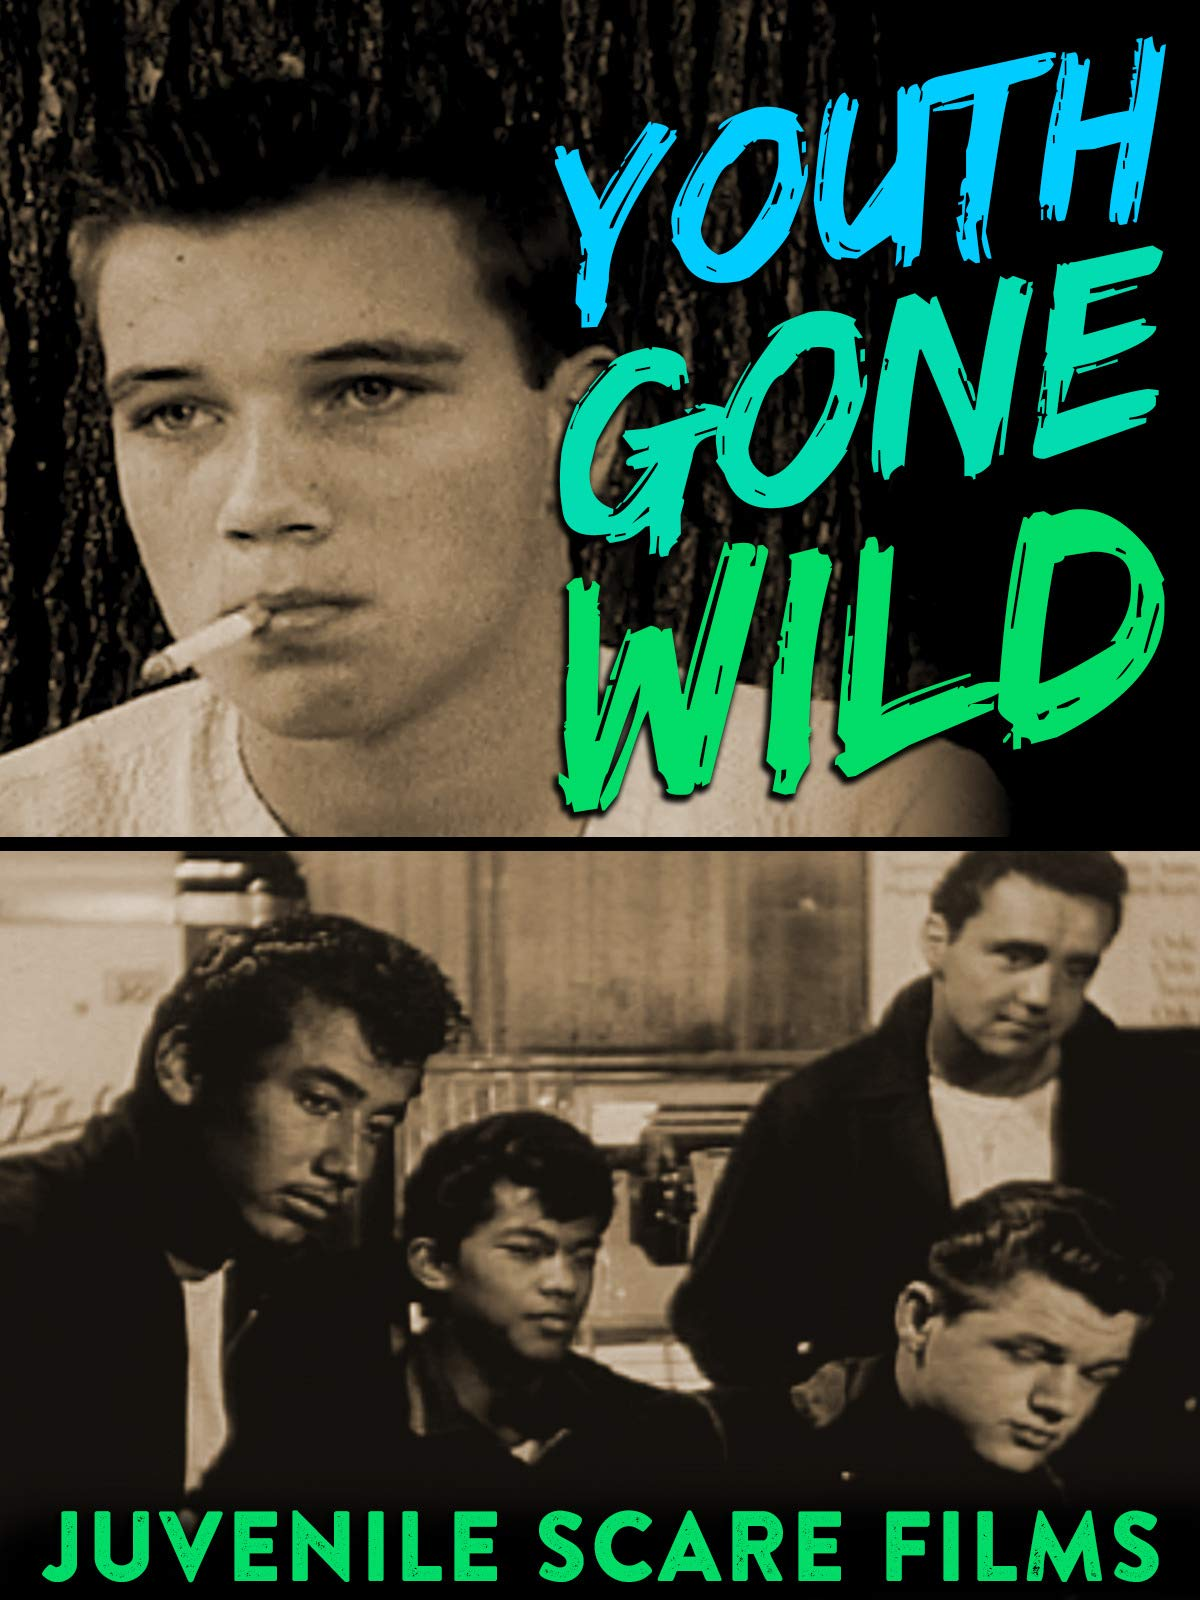 Youth Gone Wild - Juvenile Scare Films